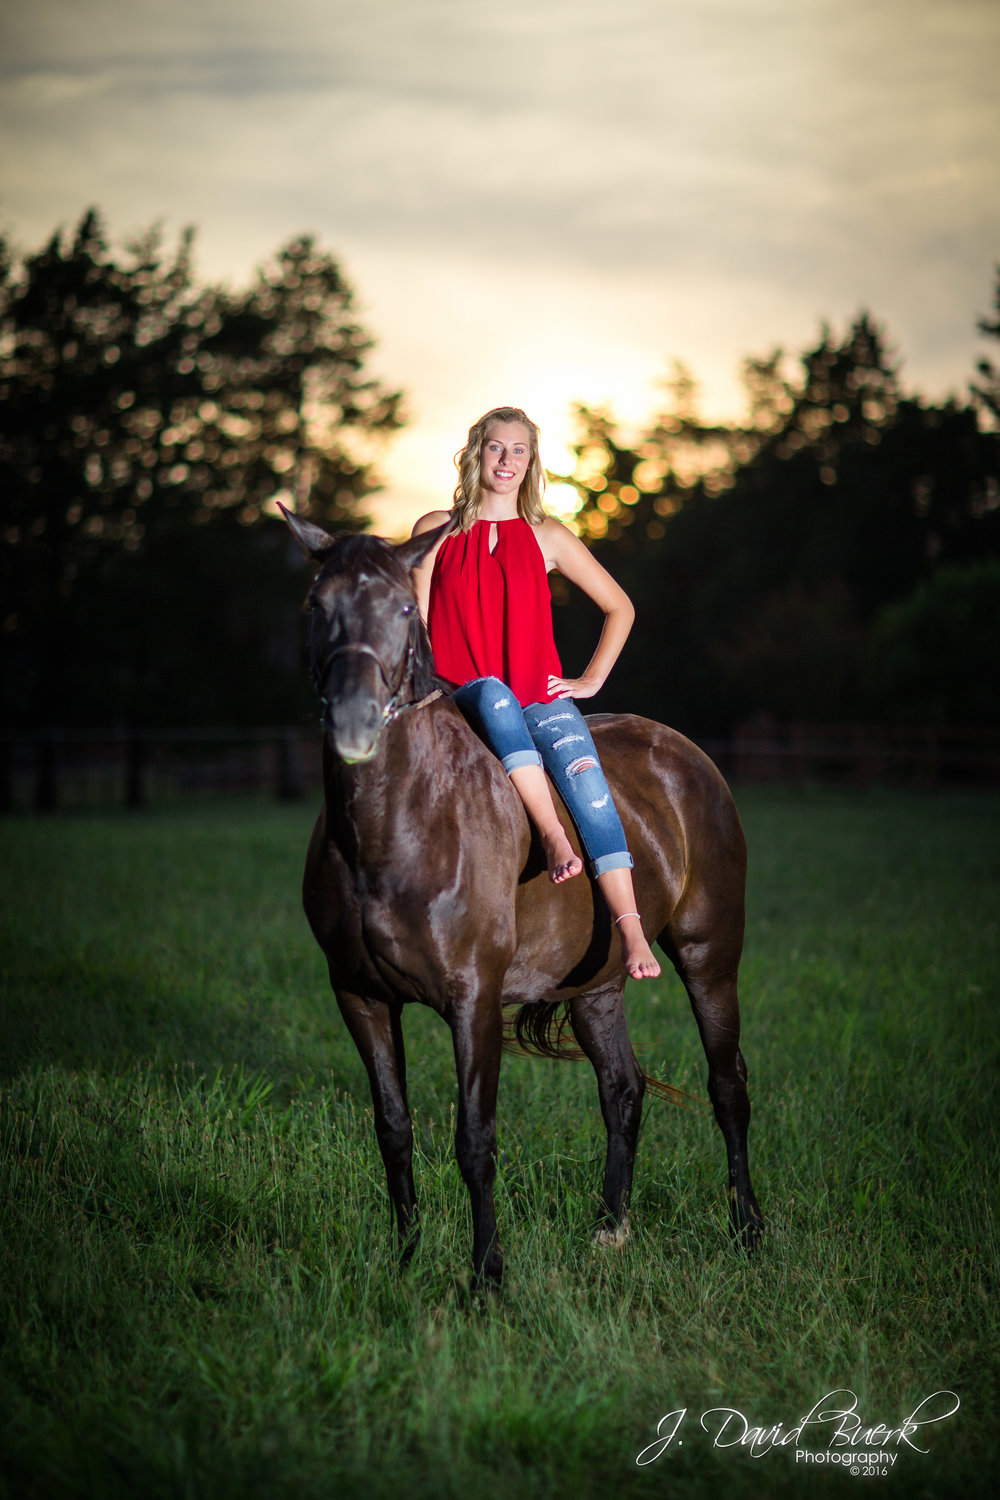 Portrait of Savannah, a rising high school senior, Class of 2017, photographed at her stable where she cares for her horse Tosca, and trains with him for equestrian events.